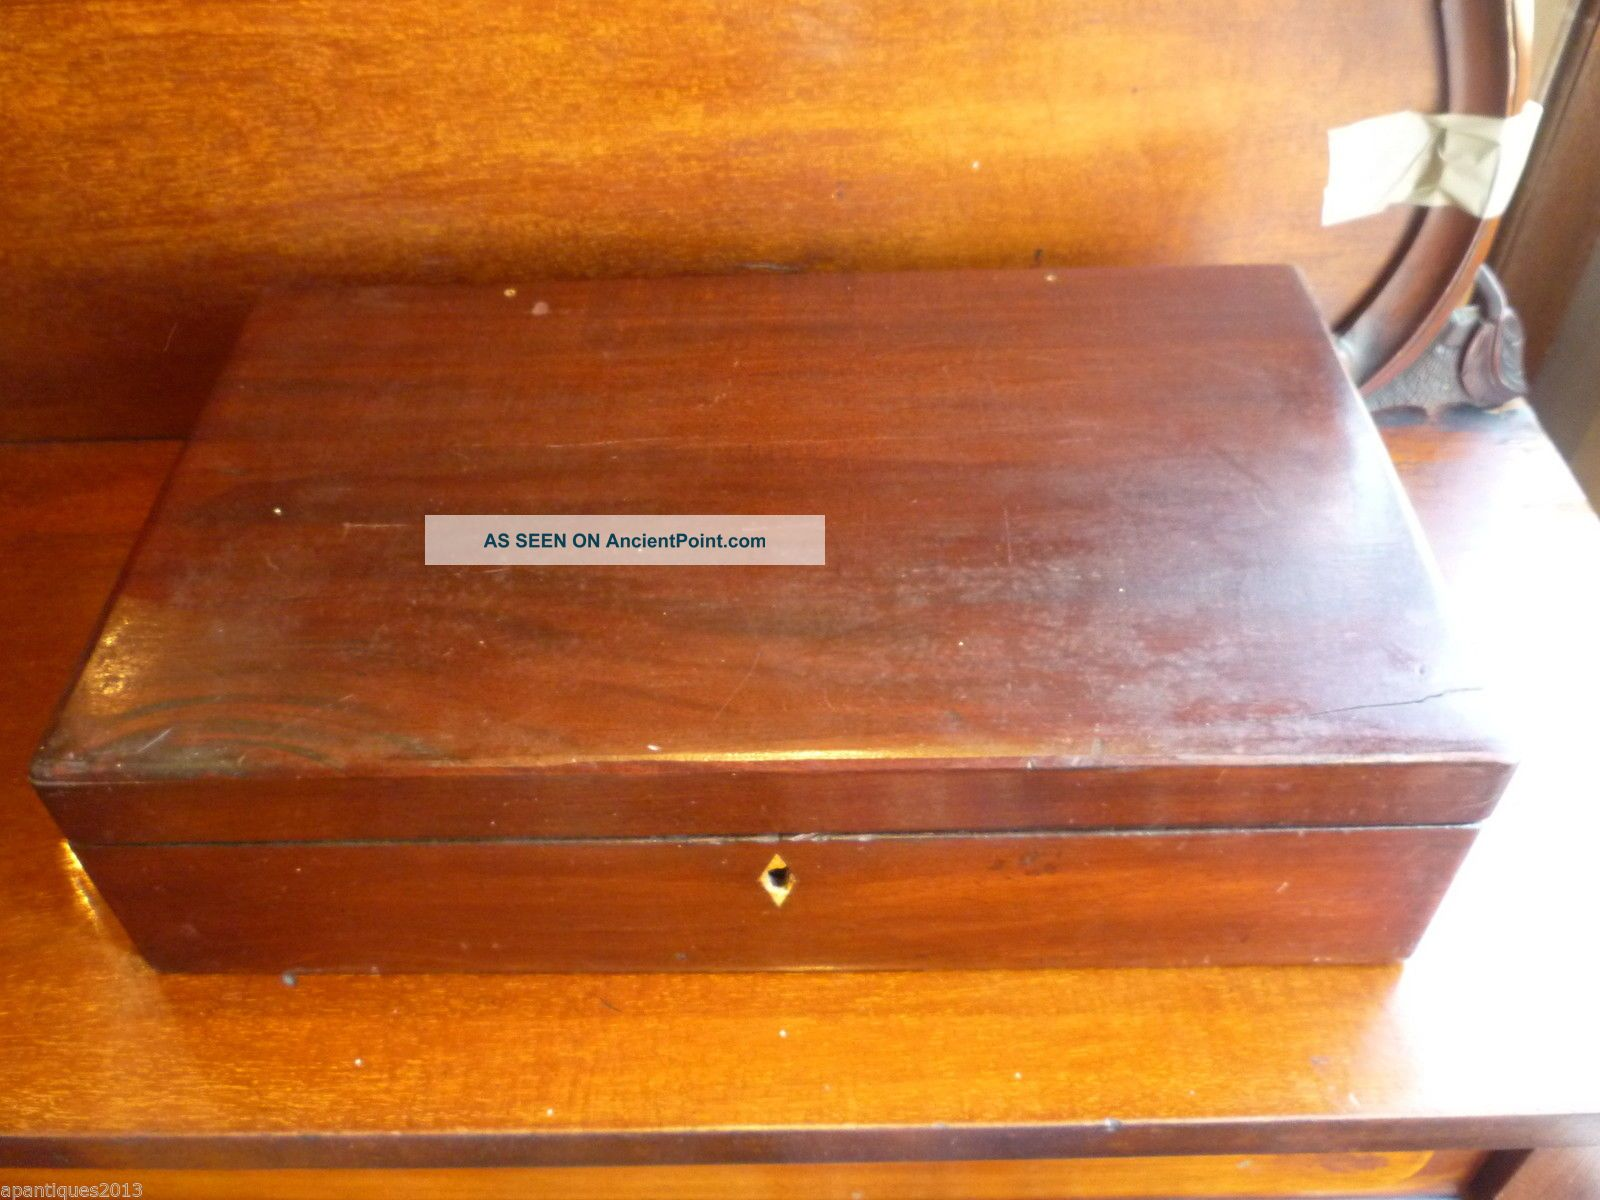 Large Antique Mahogany Writing Slope Lap Desk With Brass Handles For Tidying 1800-1899 photo